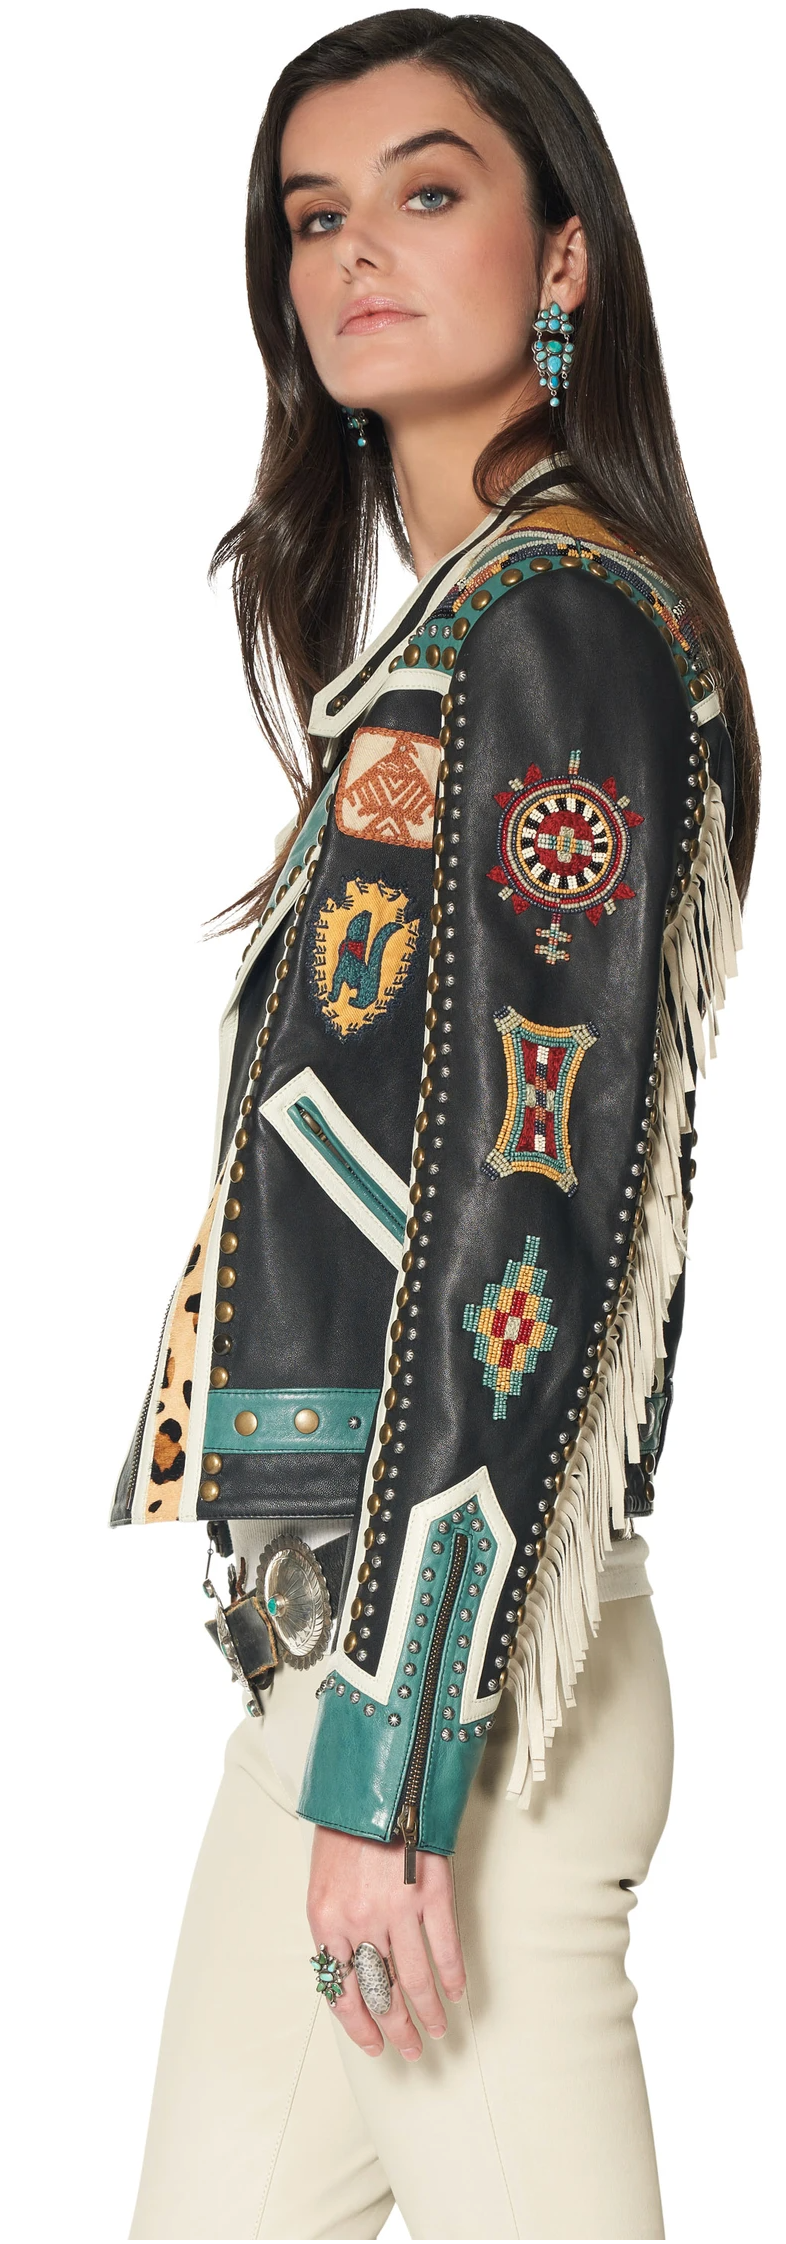 Double D Last Comanche Chief Jacket